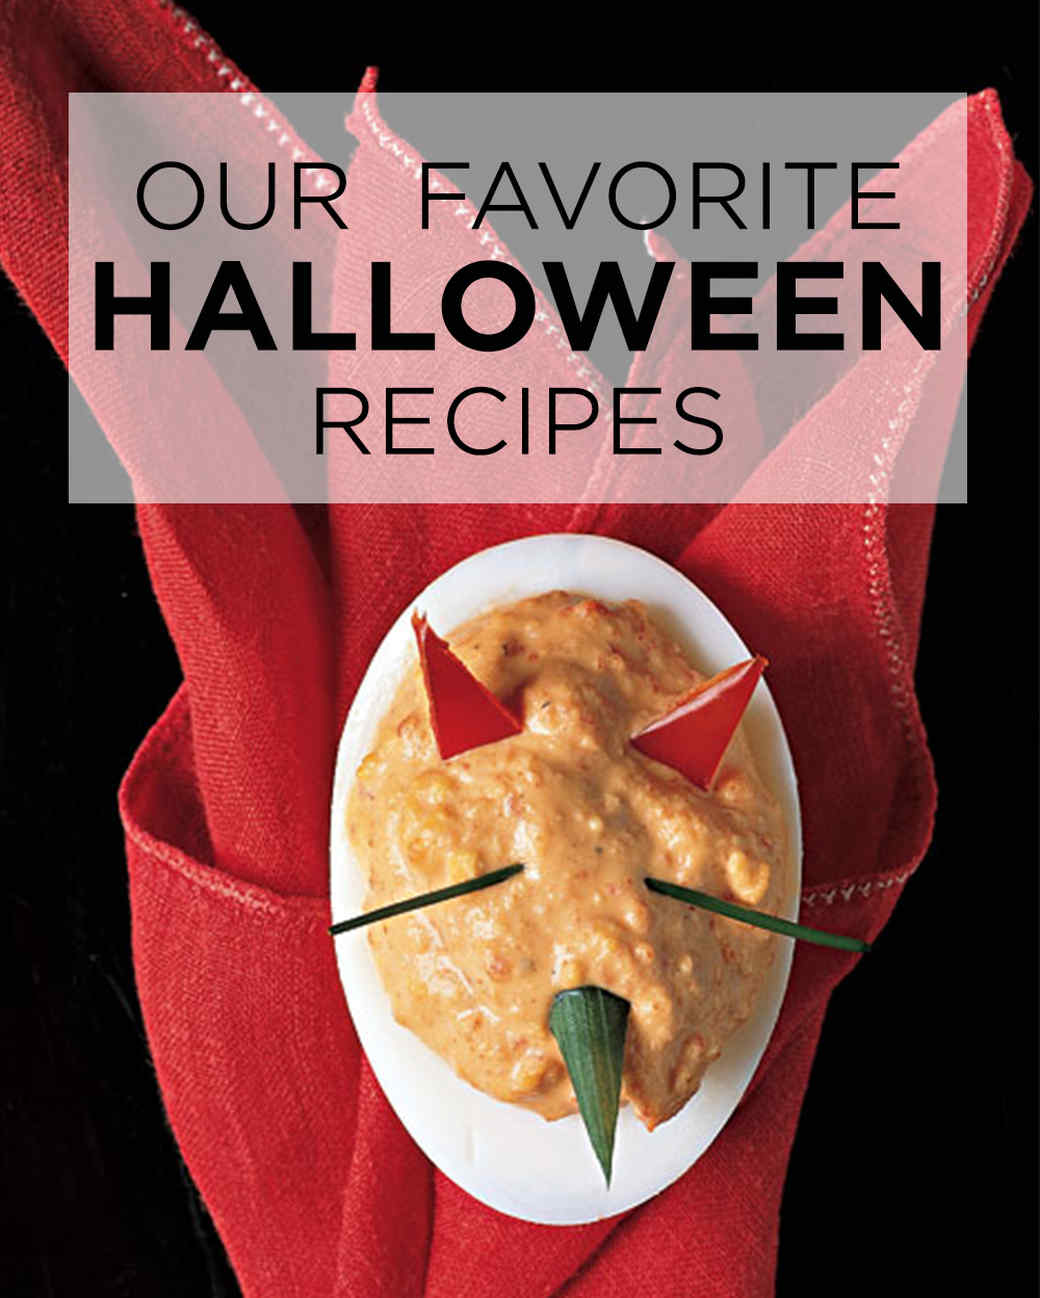 bedeviled eggs - Gourmet Halloween Recipes